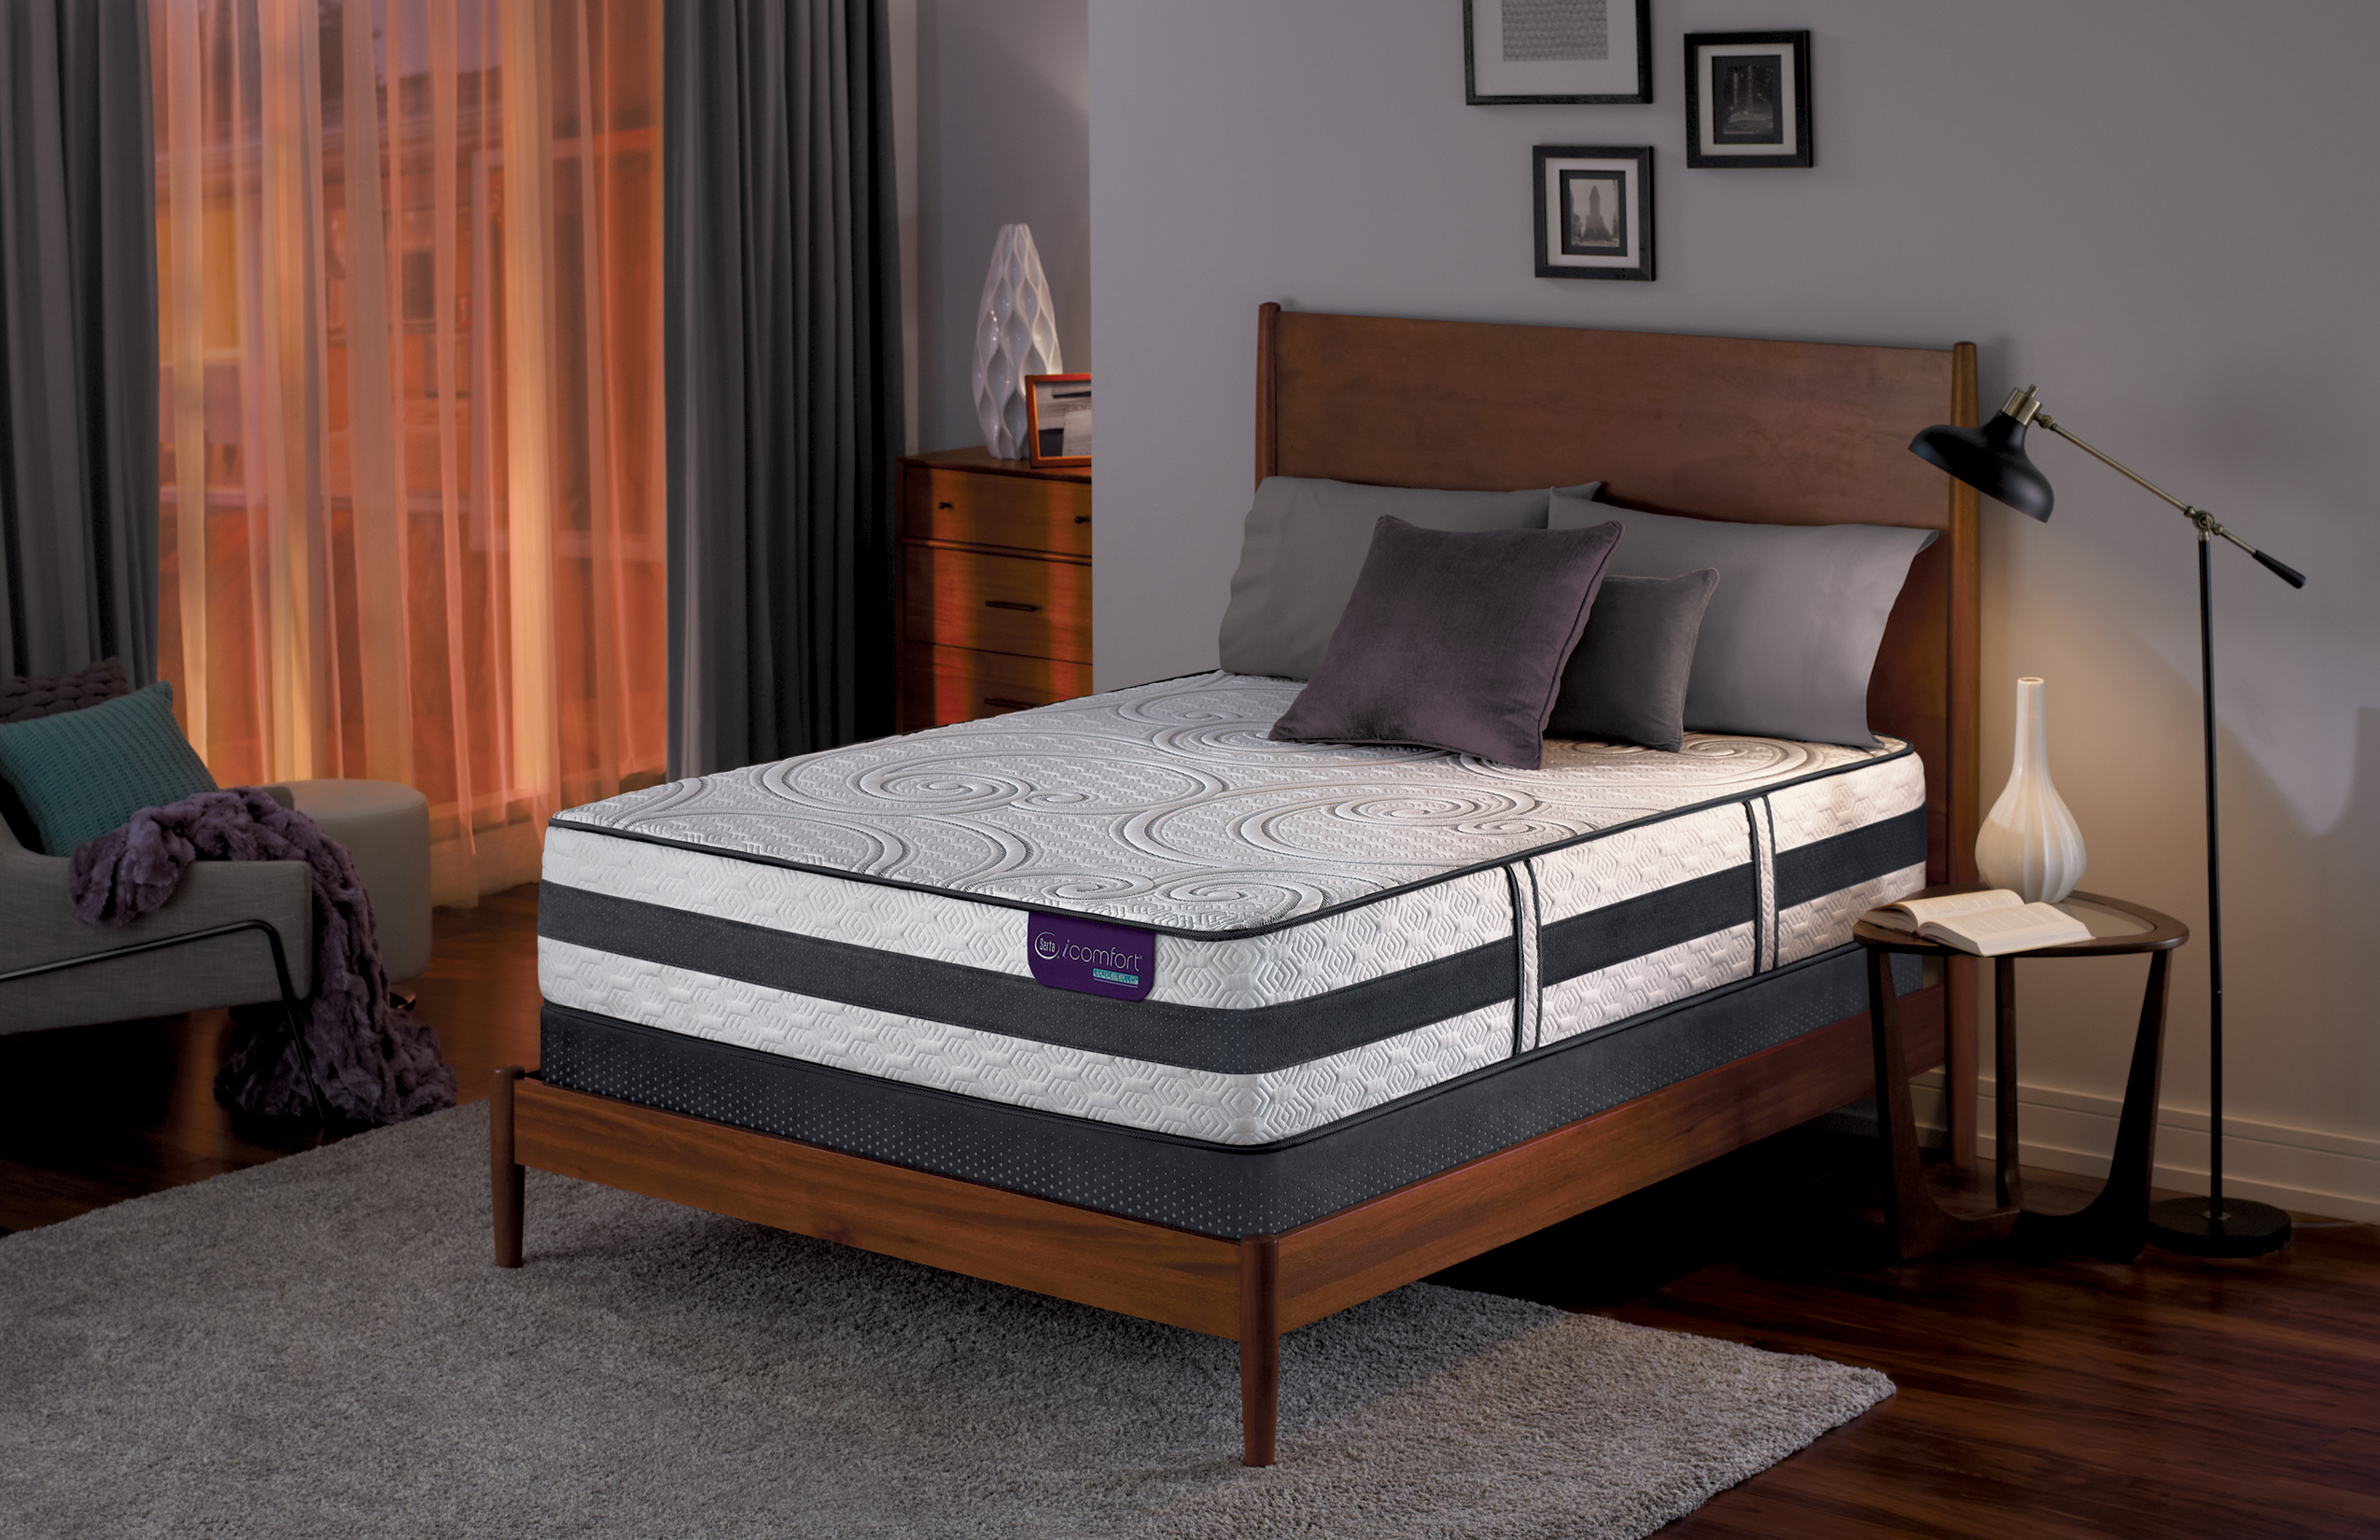 Icomfort Mattress Reviews >> Serta - Mattress Reviews | GoodBed.com